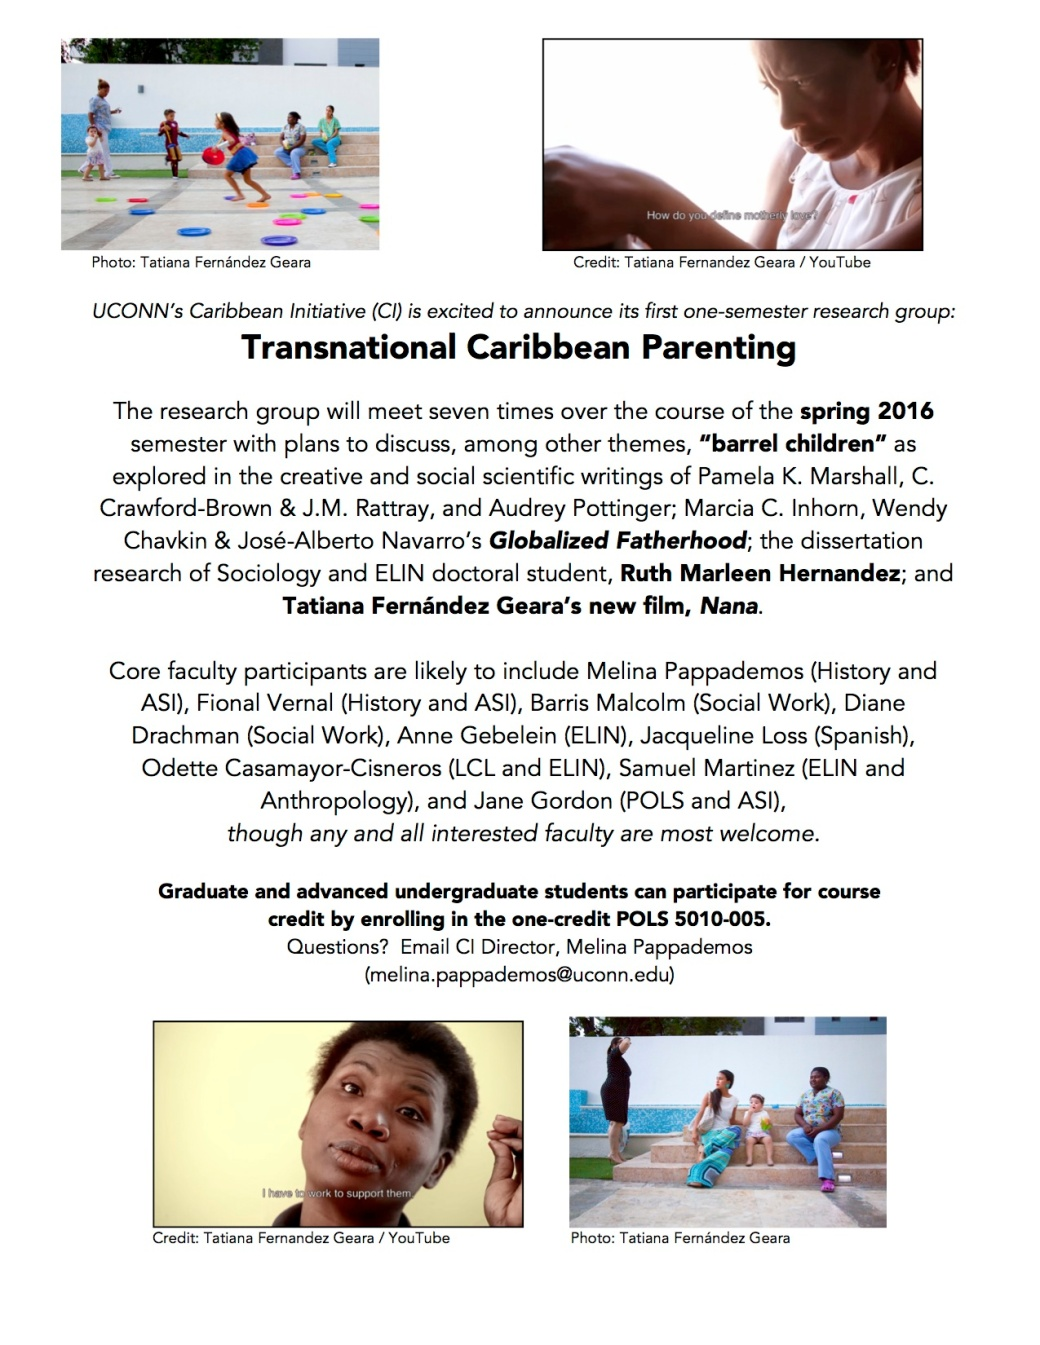 UCONN's Caribbean Initiative